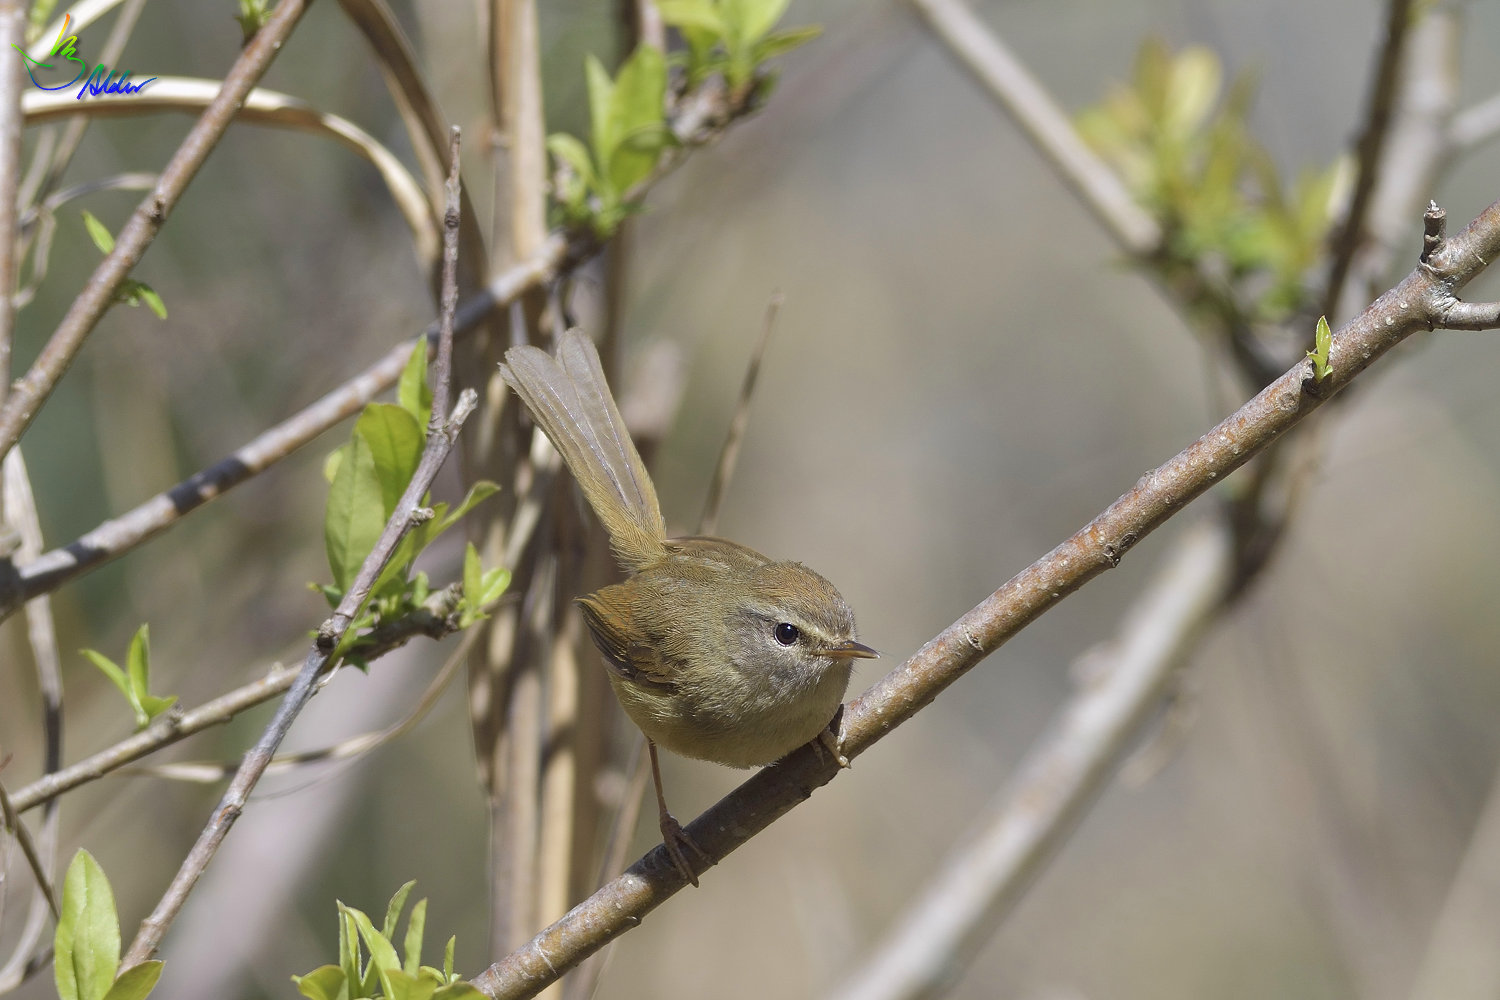 Yellow-bellied_Bush_Warbler_5070